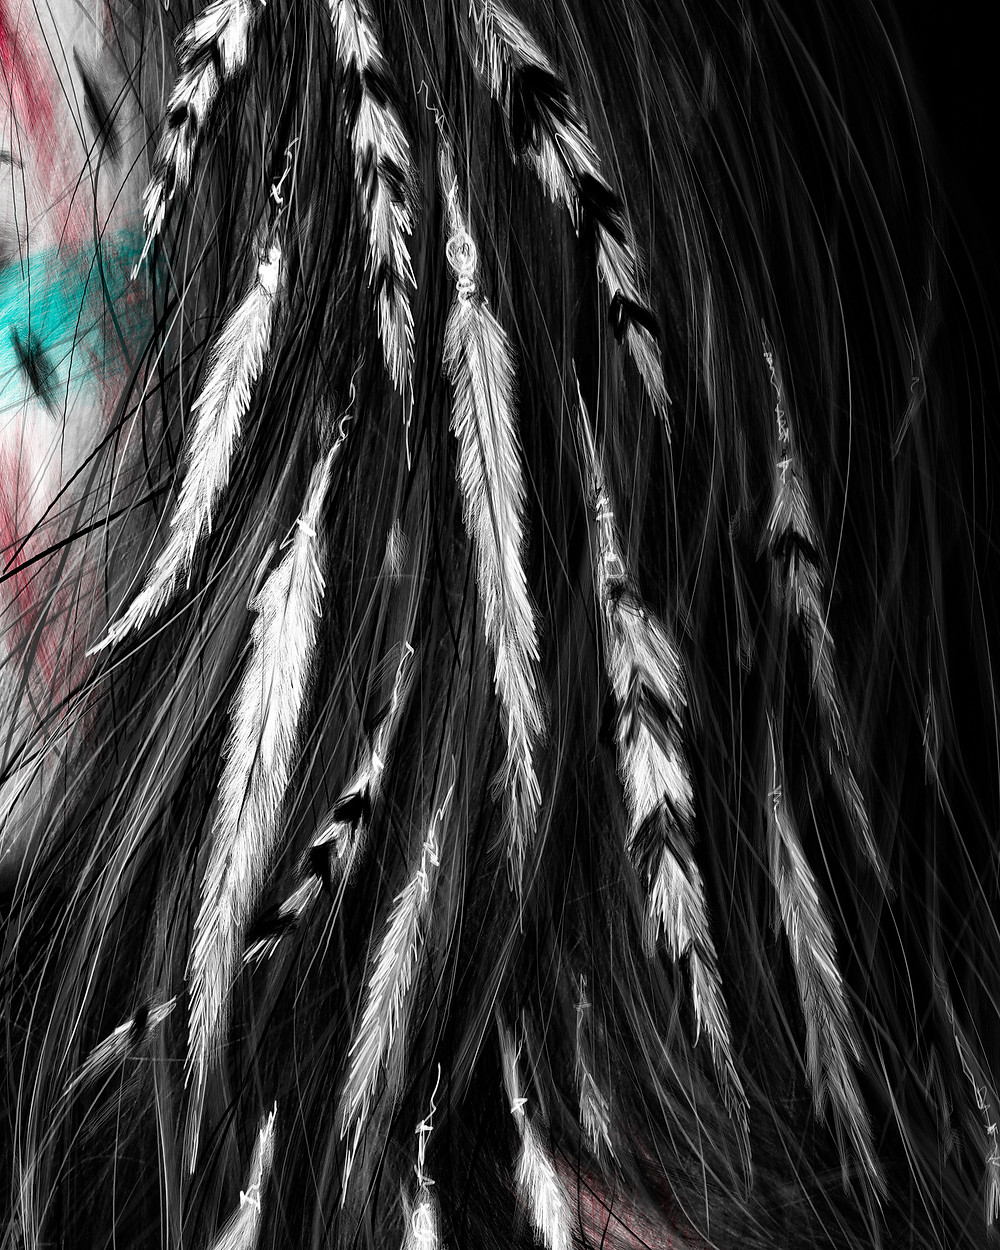 Digital Artwork of Feathers